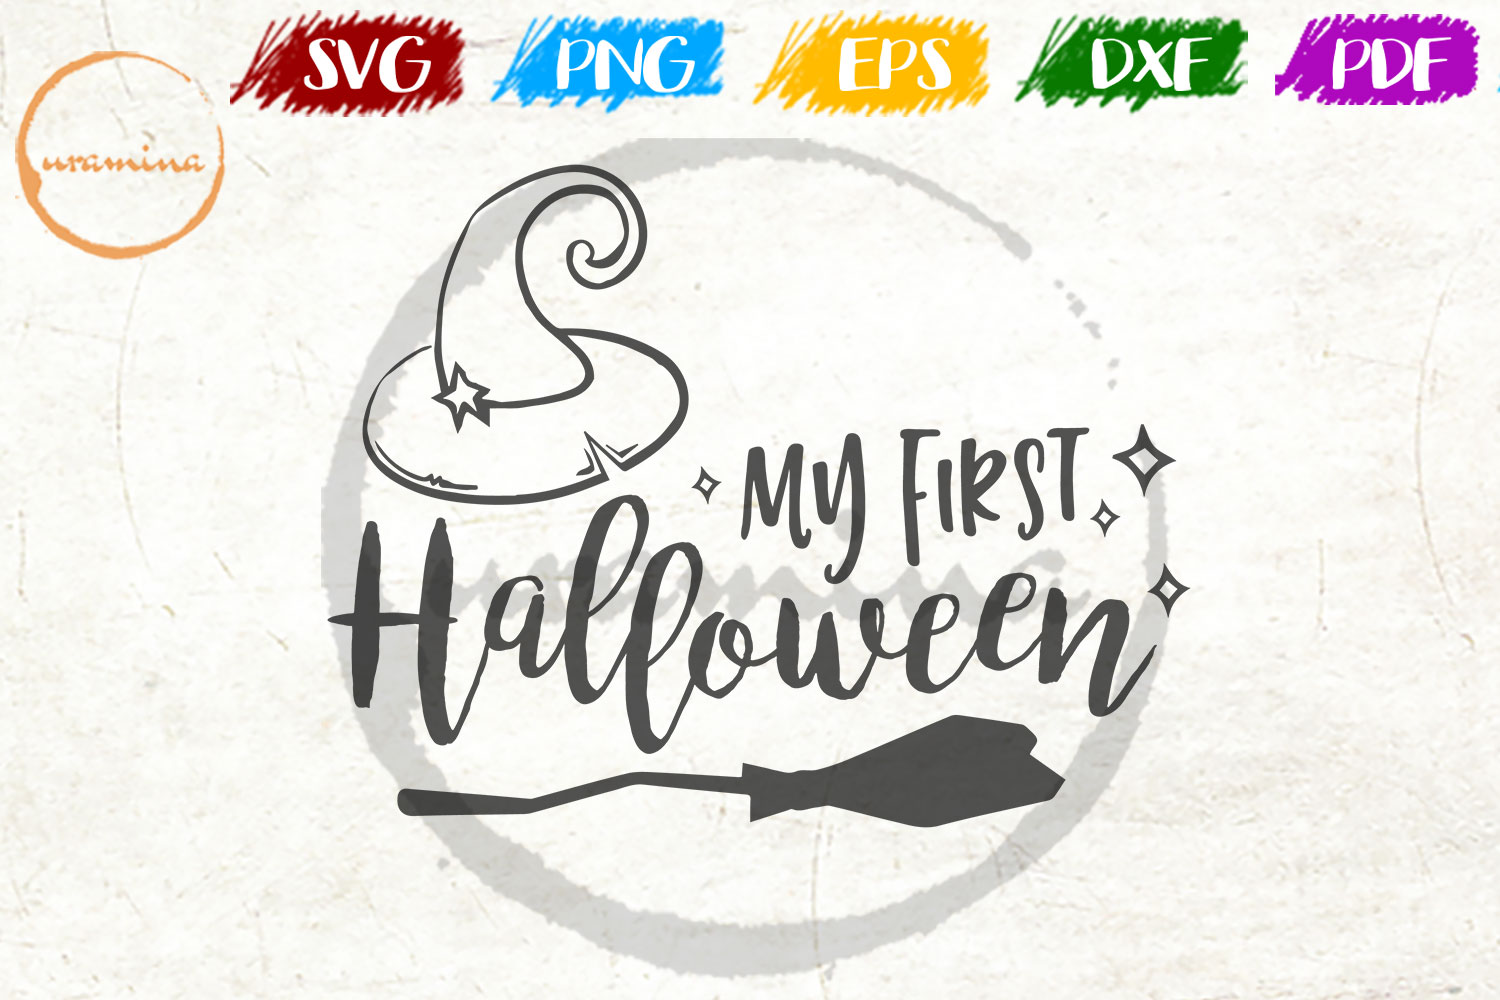 Download Free My First Halloween Graphic By Uramina Creative Fabrica for Cricut Explore, Silhouette and other cutting machines.